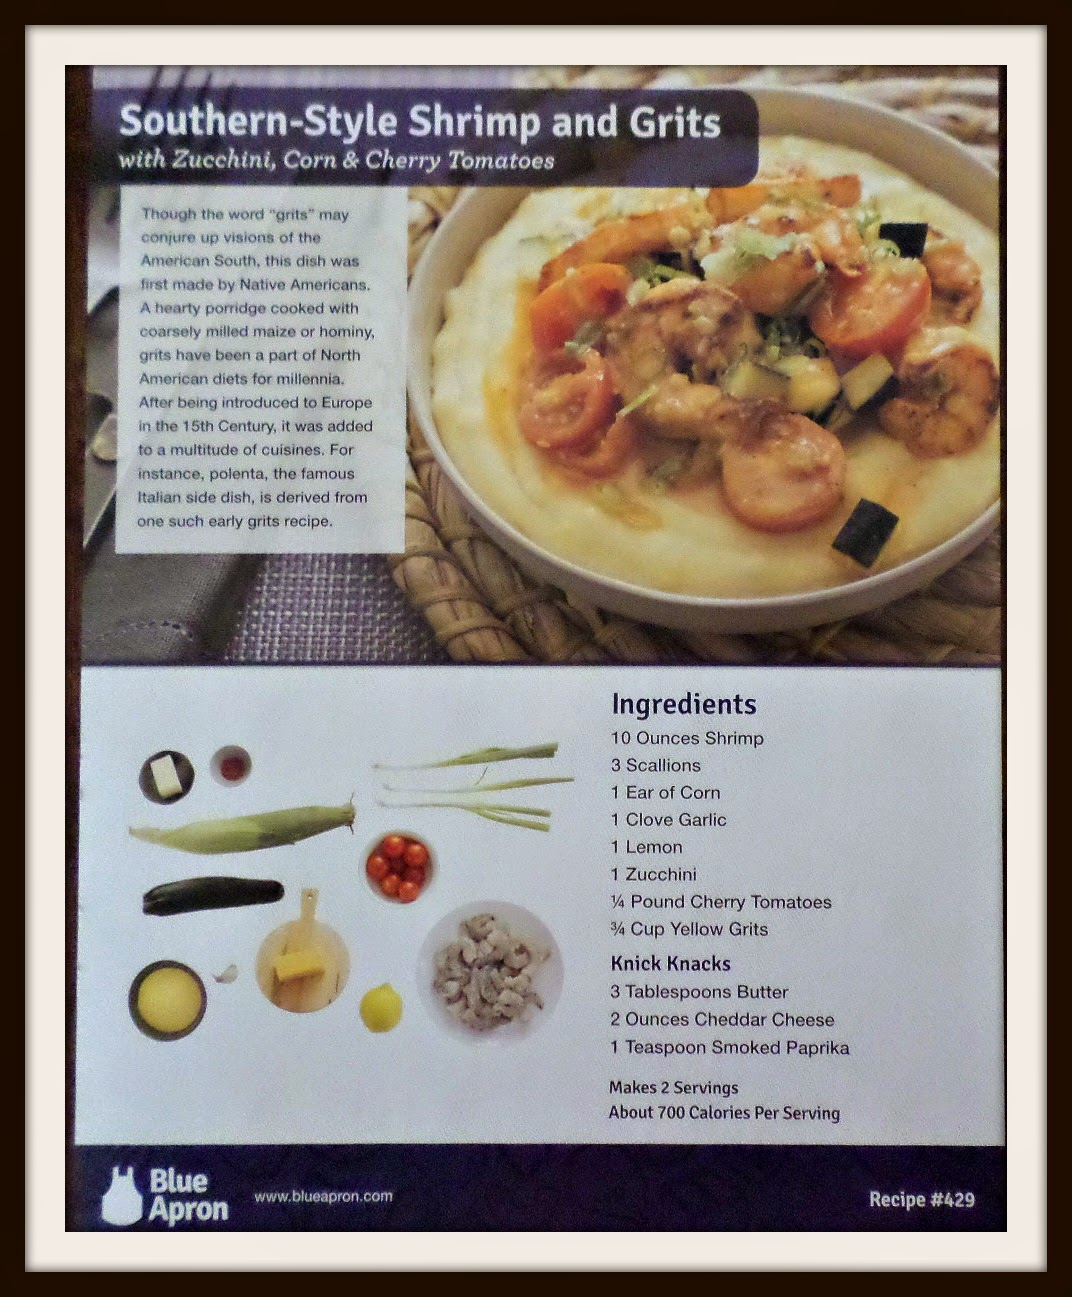 Blue apron yellow grits - Southern Shrimp Grits Hubby And I Always Wanted To Give This Recipe A Try We Ll Be Making This Recipe For Saturday Lunch